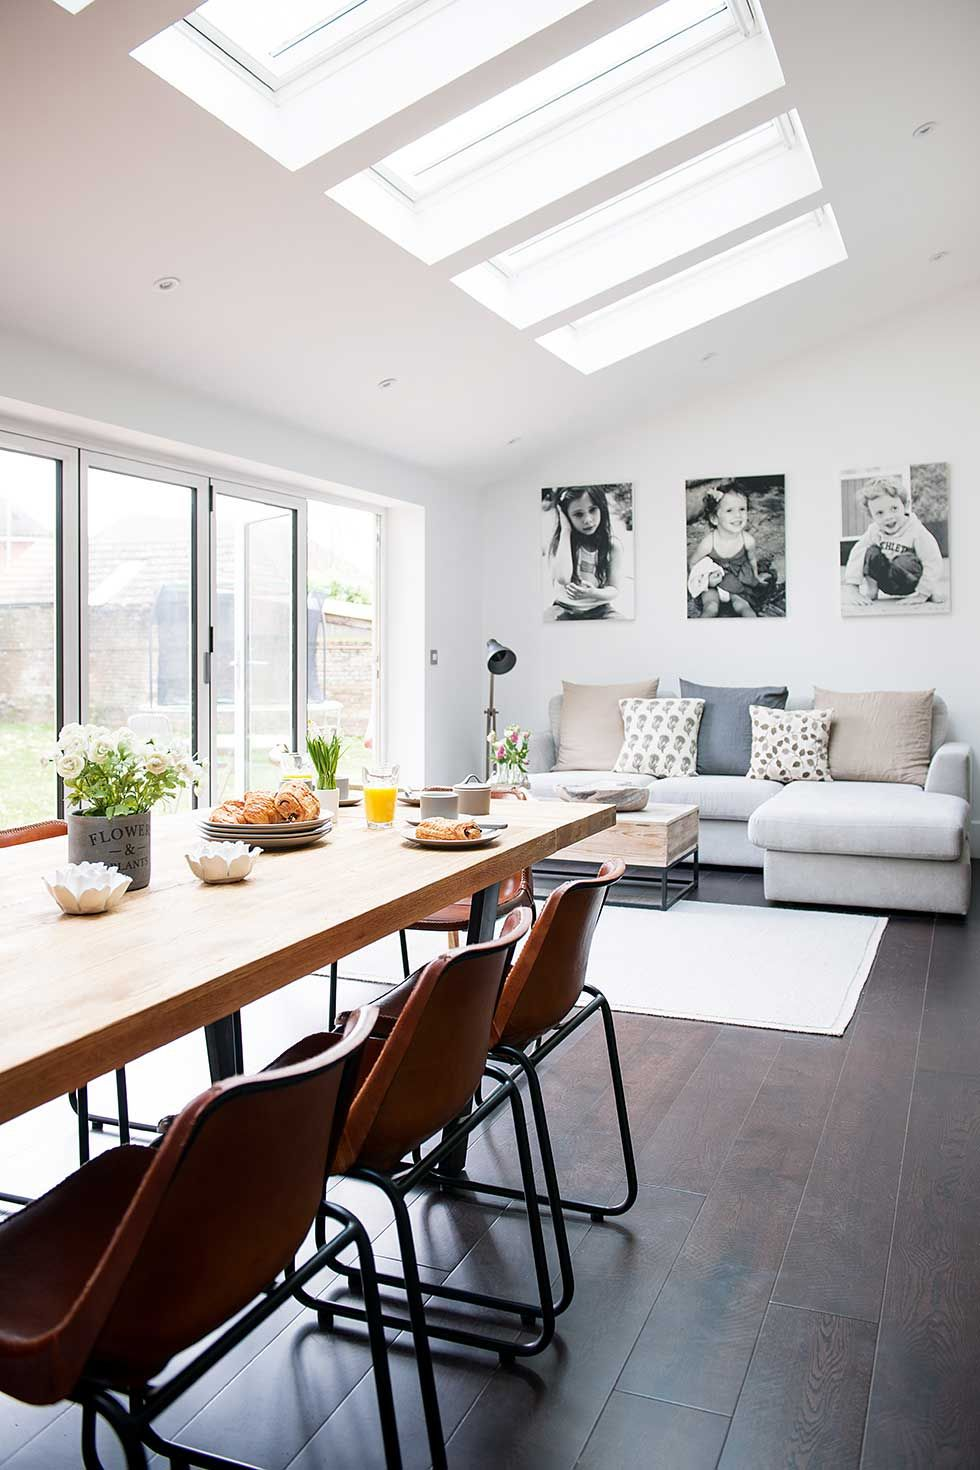 Industrial kitchen extension dining living rooflights with sofa and ...